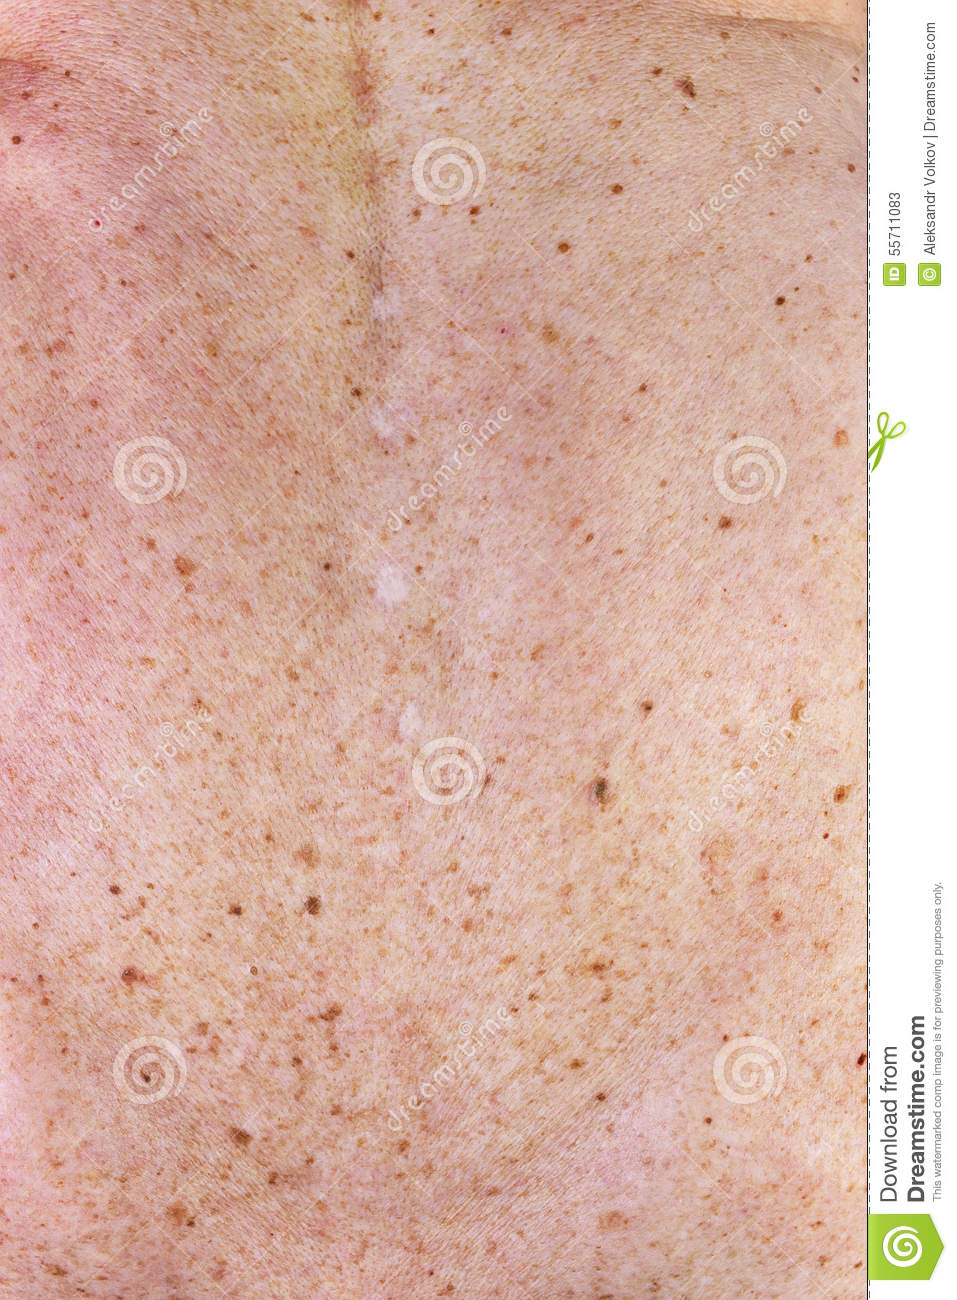 Image Result For How To Cut Off A Mole